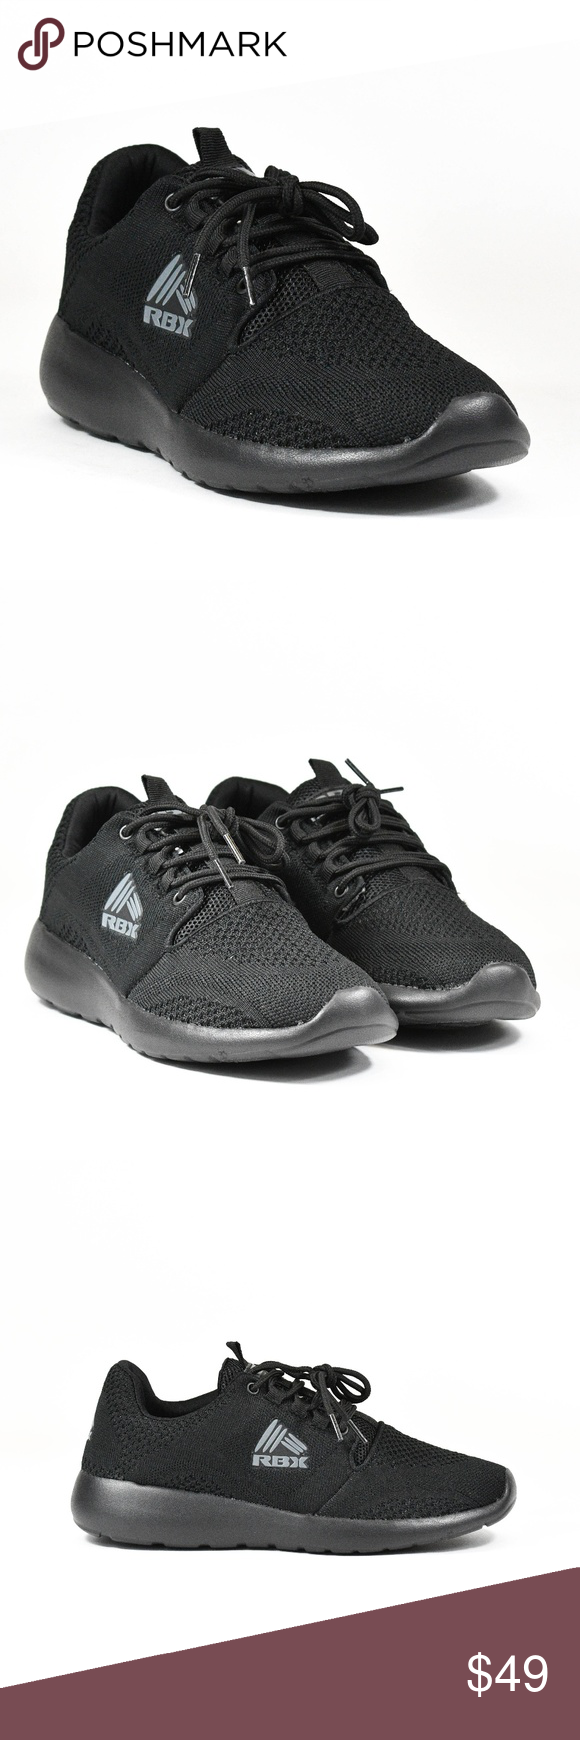 Live Life Active Running Shoes   Rbx